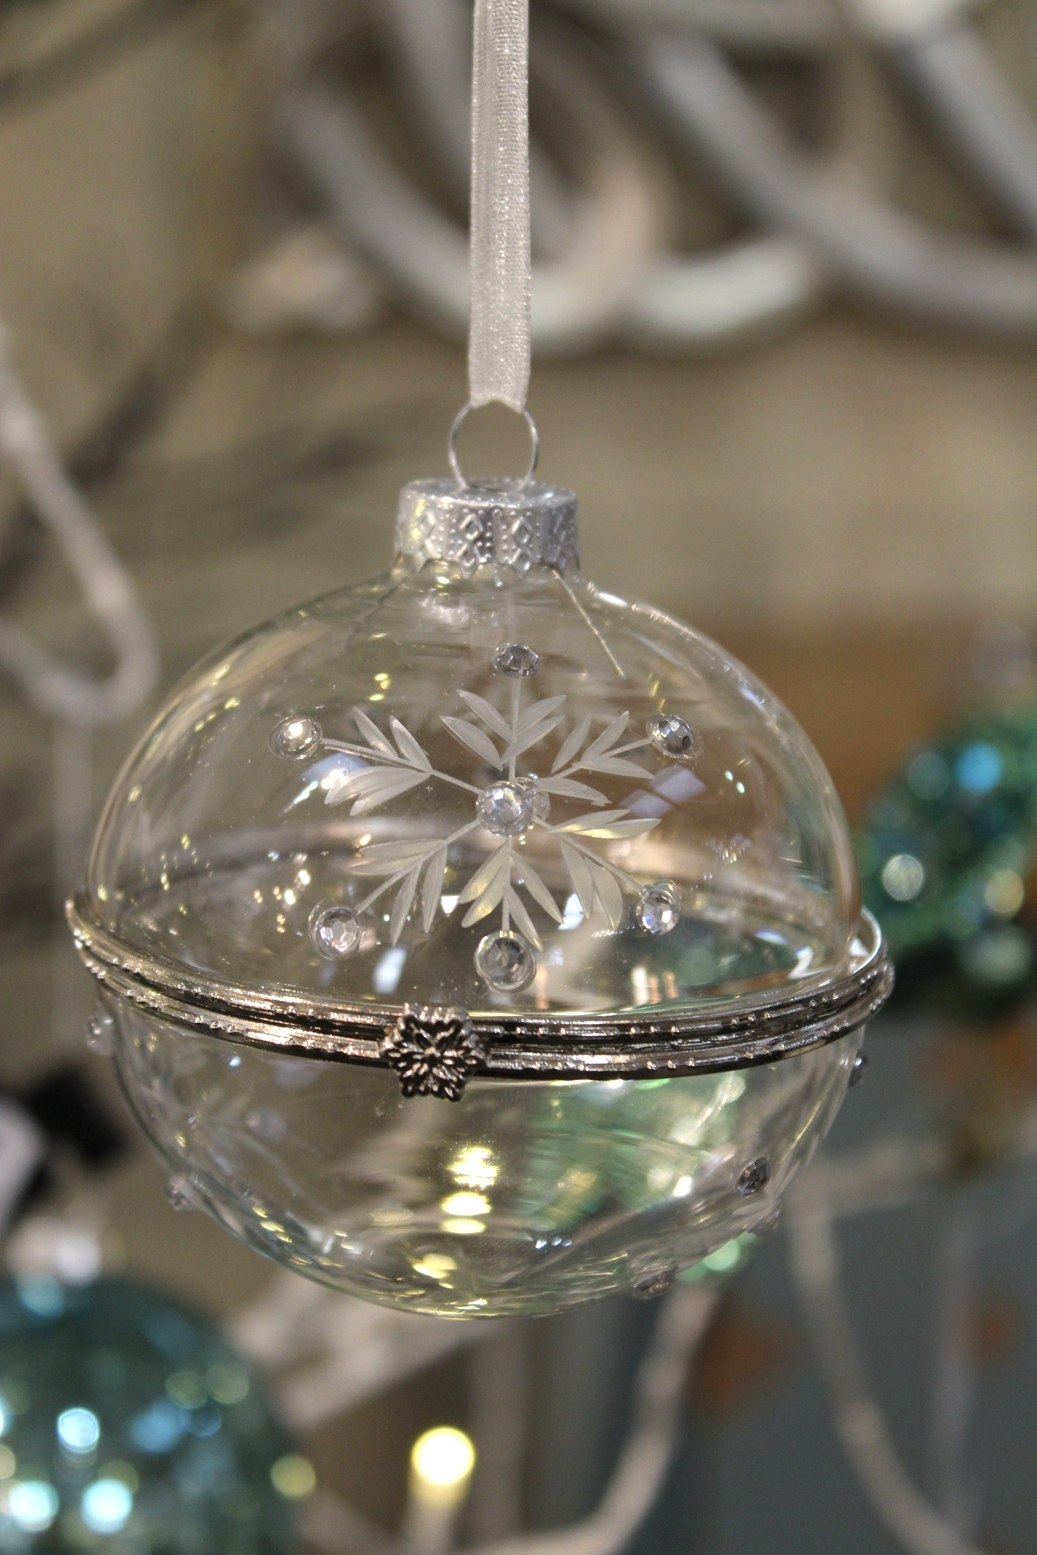 Glass Case Bauble - €5.90